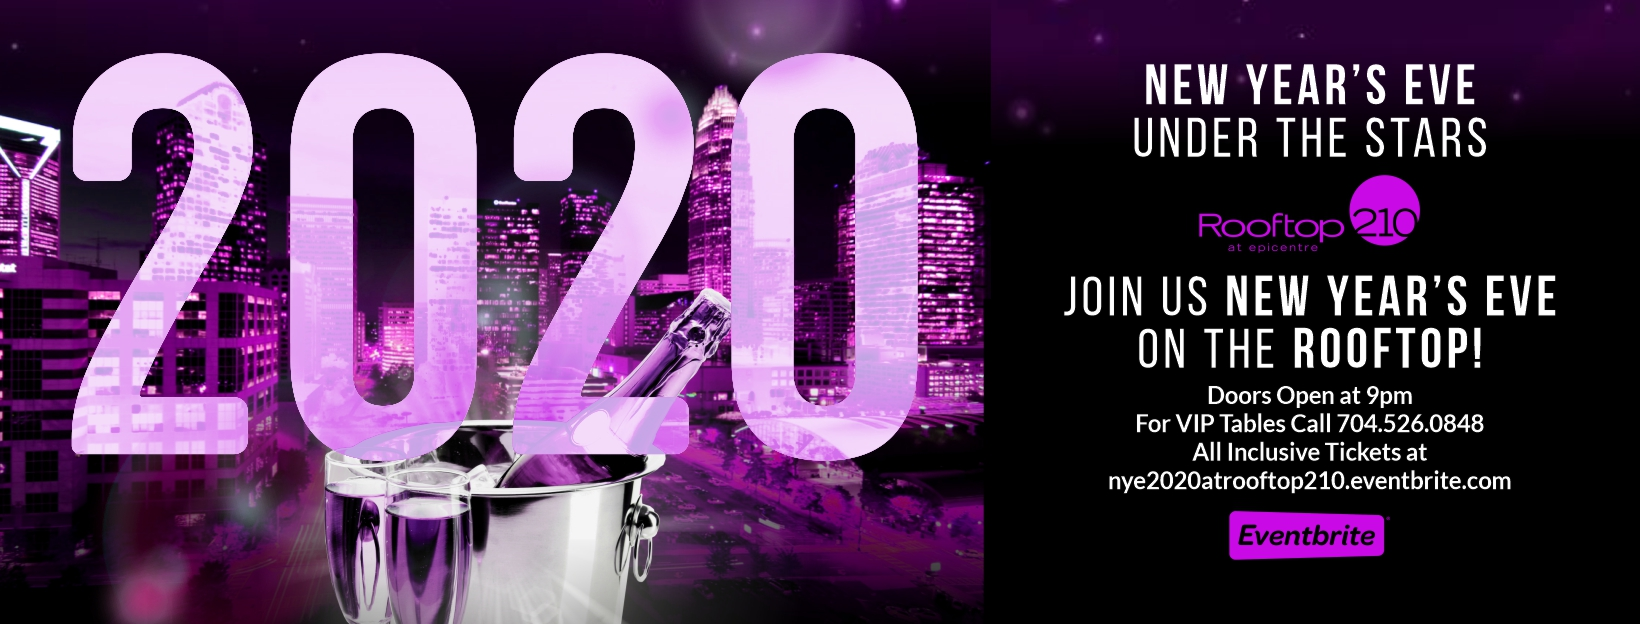 Rooftop210's New Year's Eve Under the Stars